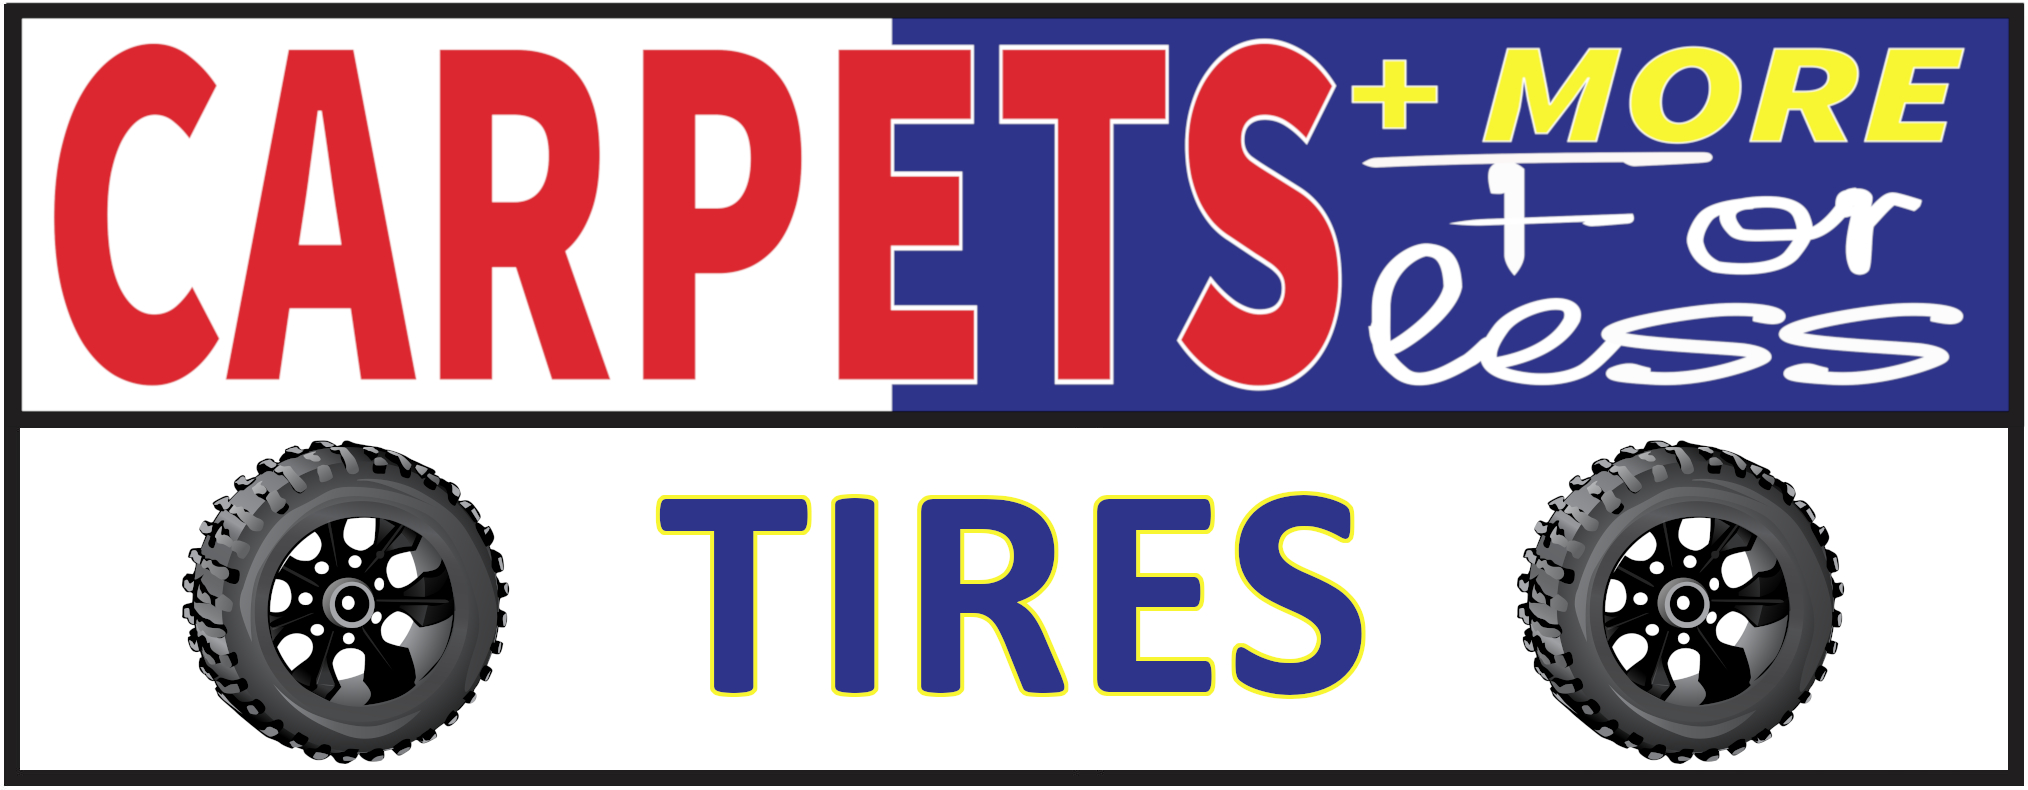 Carpets + More for Less [Tires] Logo